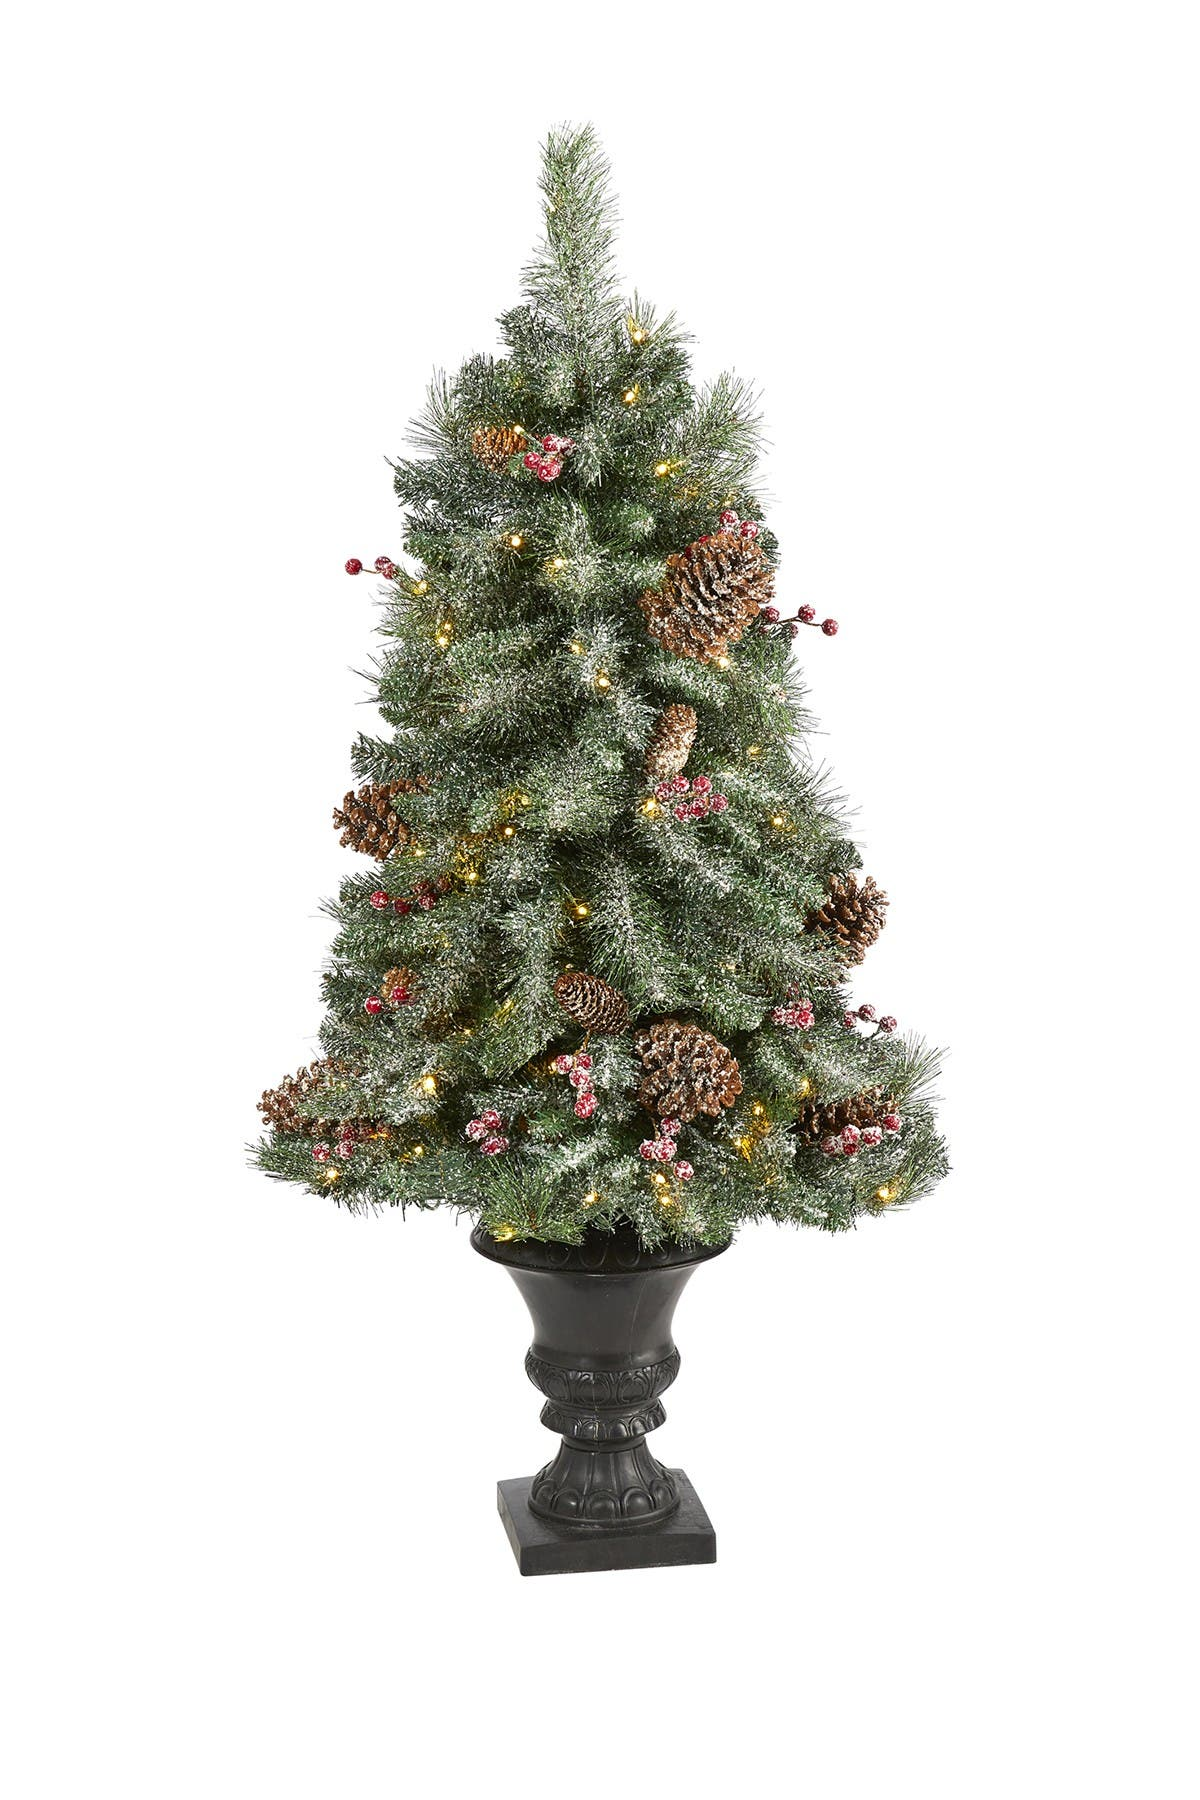 Image of NEARLY NATURAL 4ft. Frosted Pine, Pinecone and Berries Artificial Christmas Tree with 100 Clear LED Lights in Decorative Urn